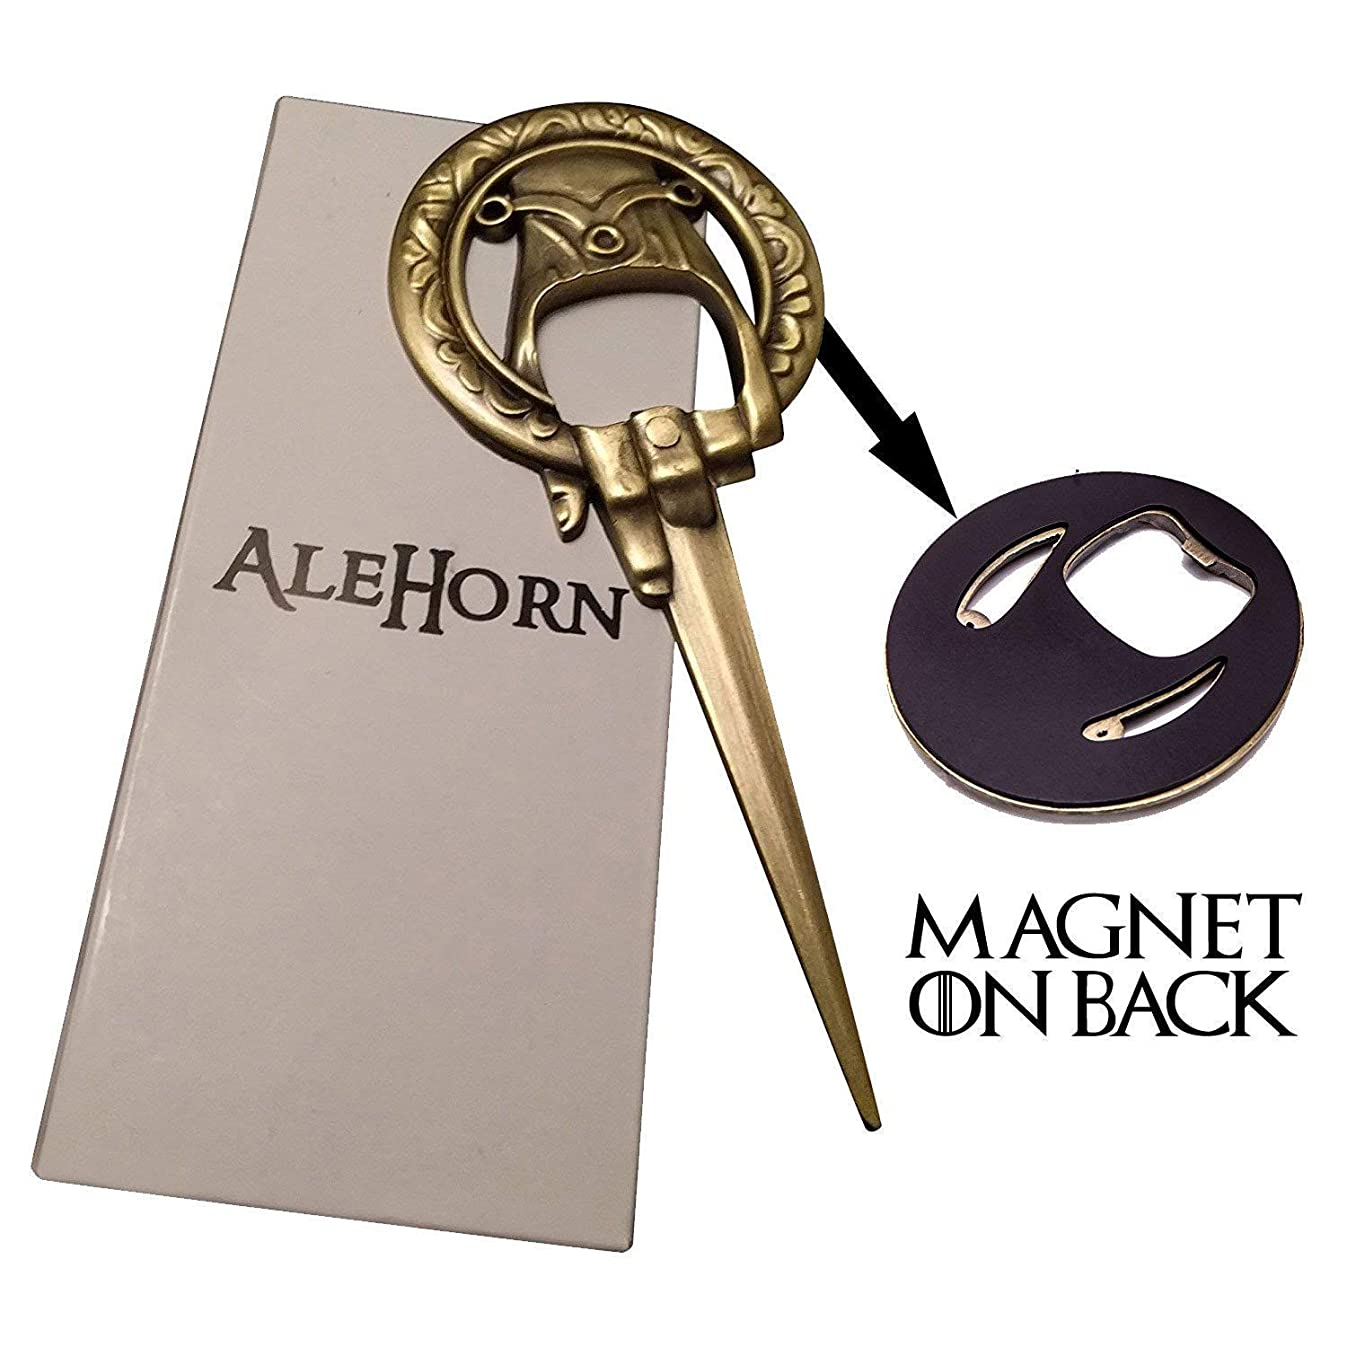 """AleHorn """"Hand of the King"""" Style Bottle Opener– Easily Removes Bottle Caps and Opens Letters – Perfect Gift for Game of Thrones Fans (Hand of the King)"""